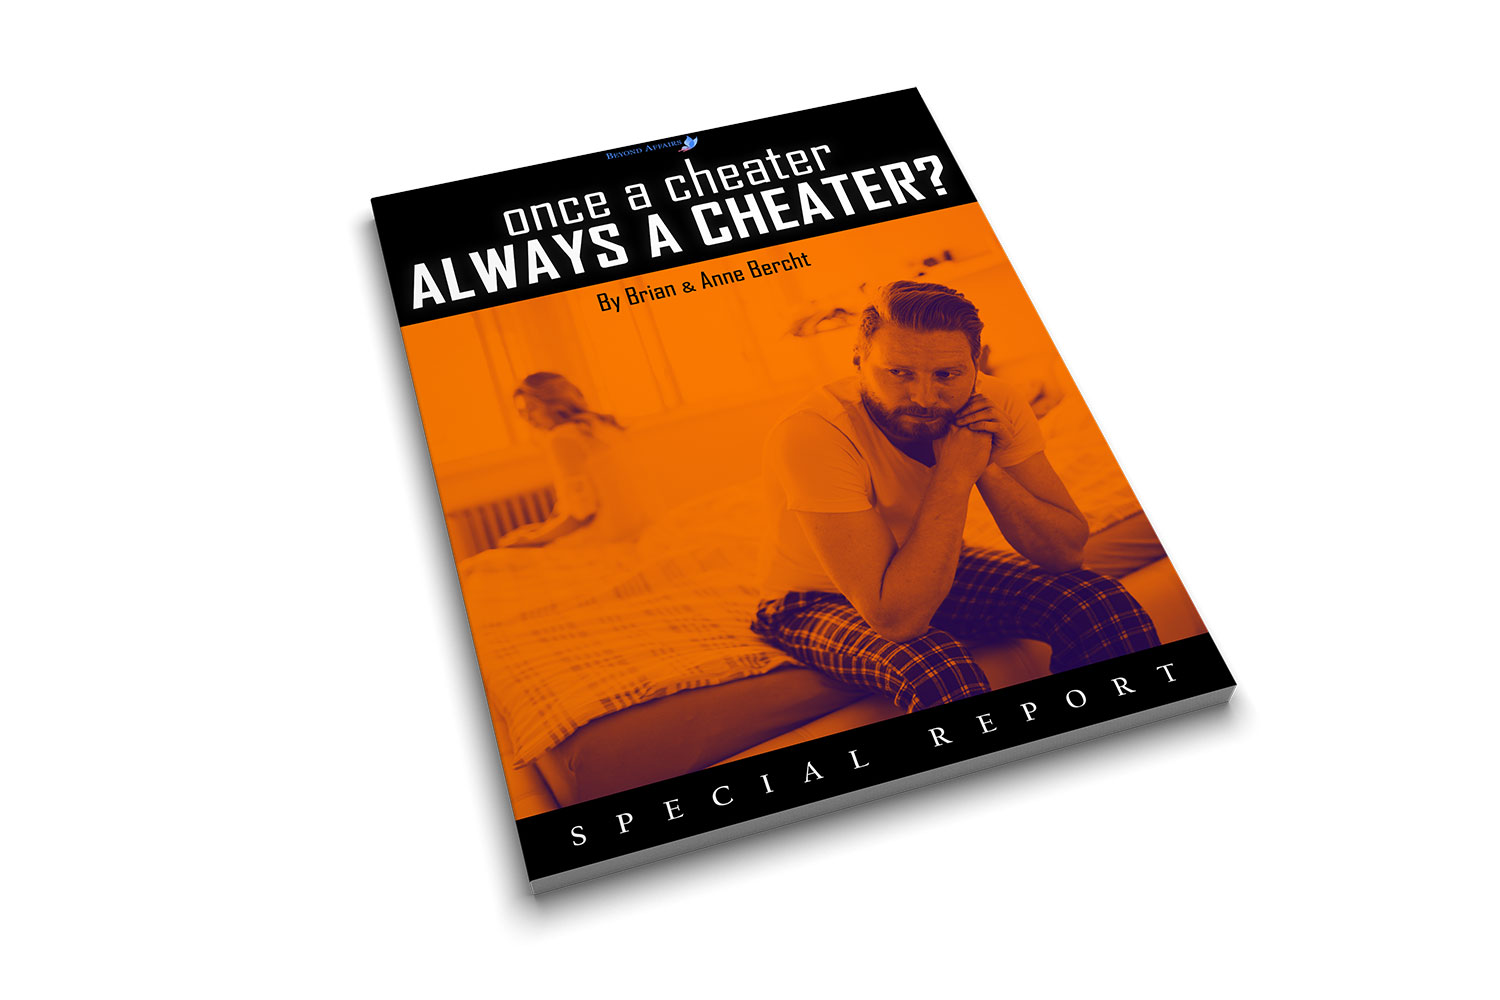 Beyond Affairs special report titled Once A Cheater Always A Cheater